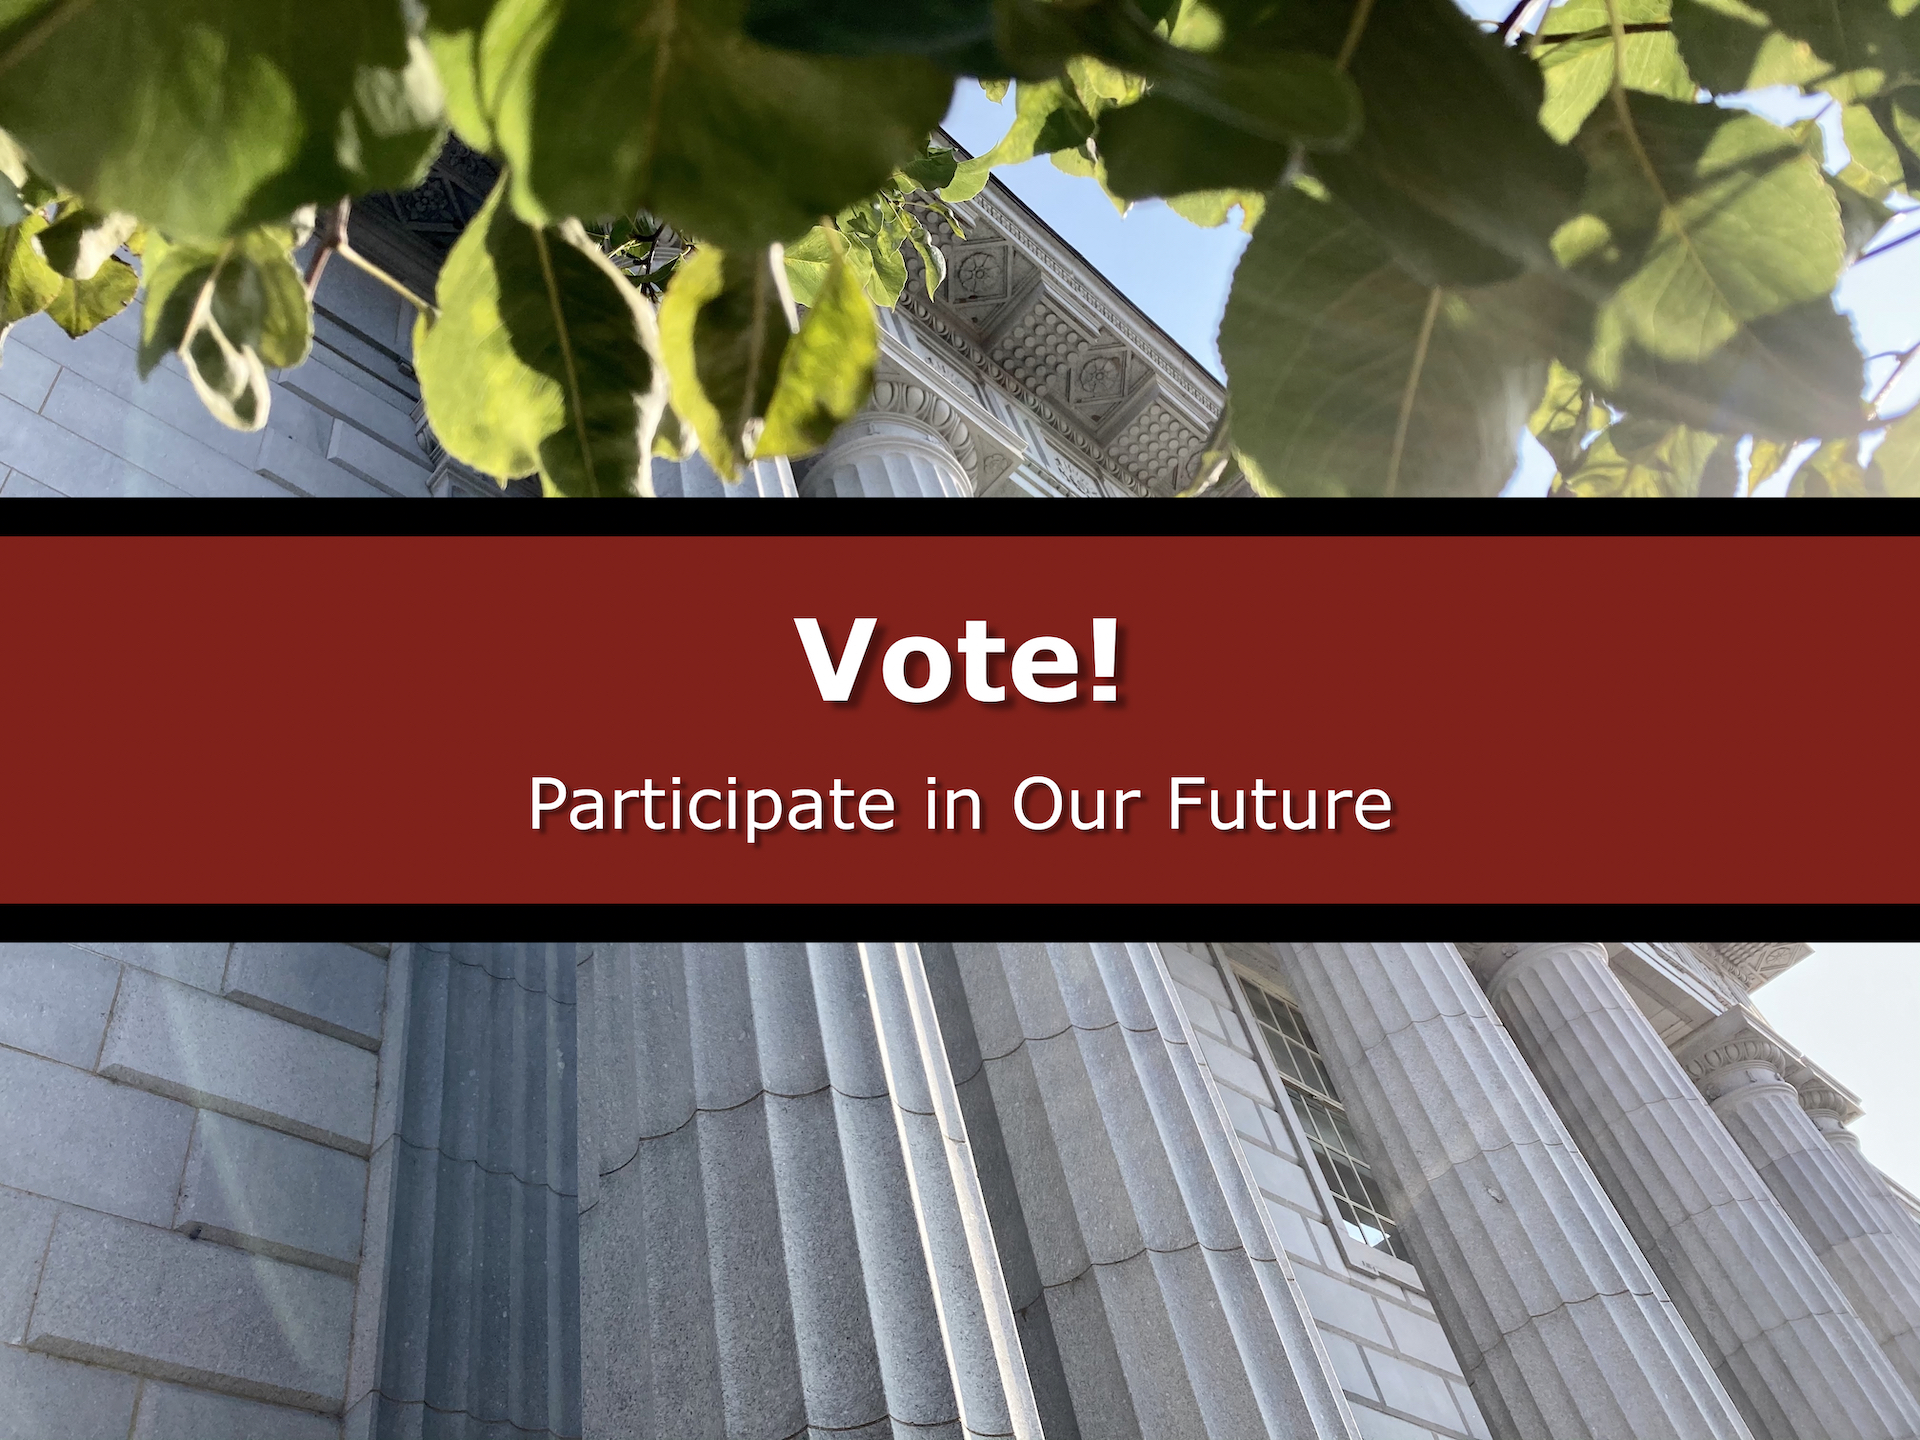 """Image Button of front of Federal Building with wording """"Vote: Participate in Our Future"""""""